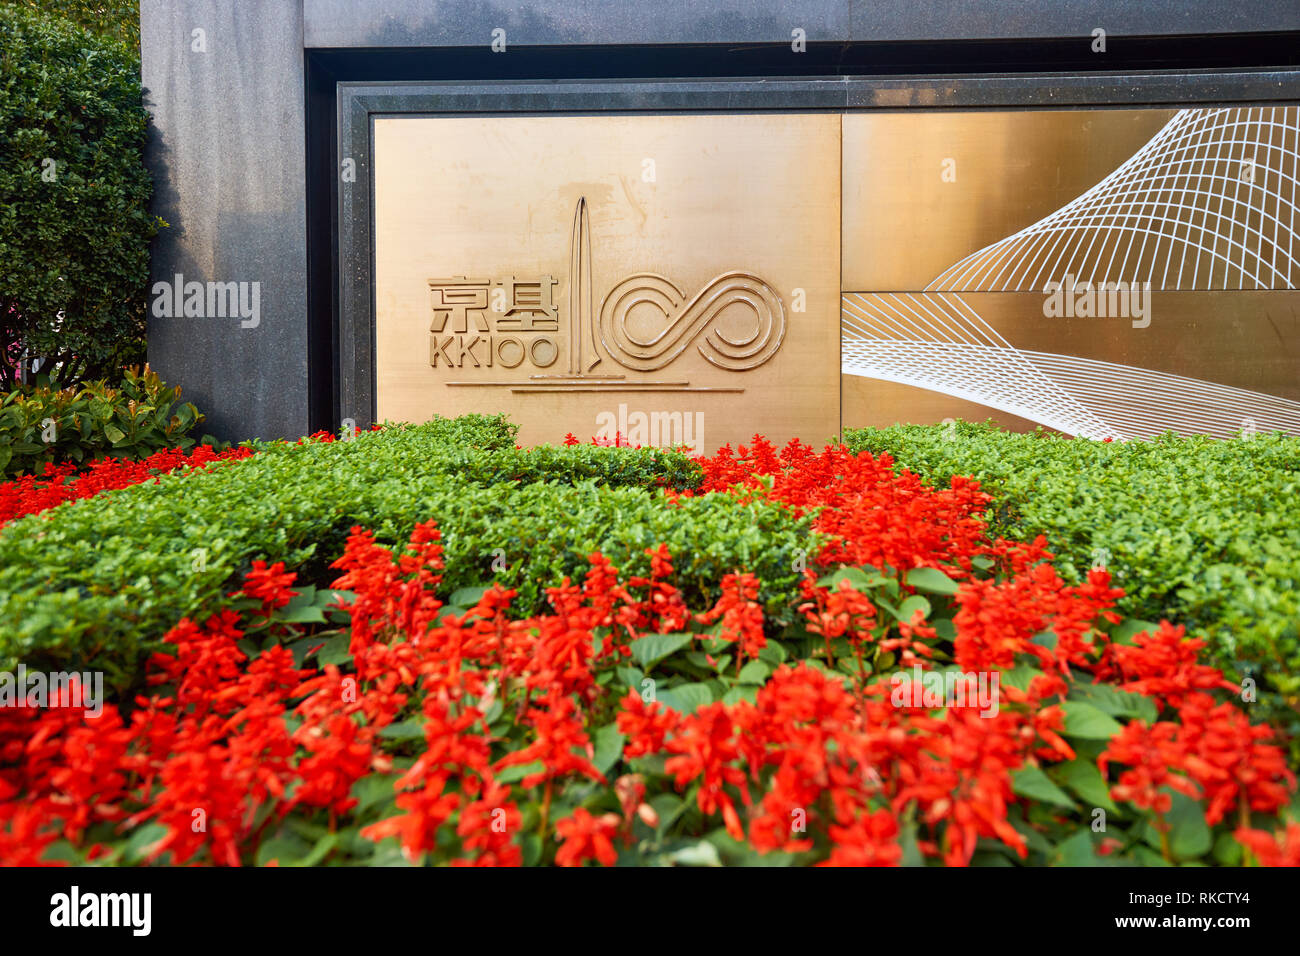 SHENZHEN, CHINA - FEBRUARY 05, 2016: KK100 signboard. The KK100 is a supertall skyscraper in Shenzhen, Guangdong province, China. - Stock Image